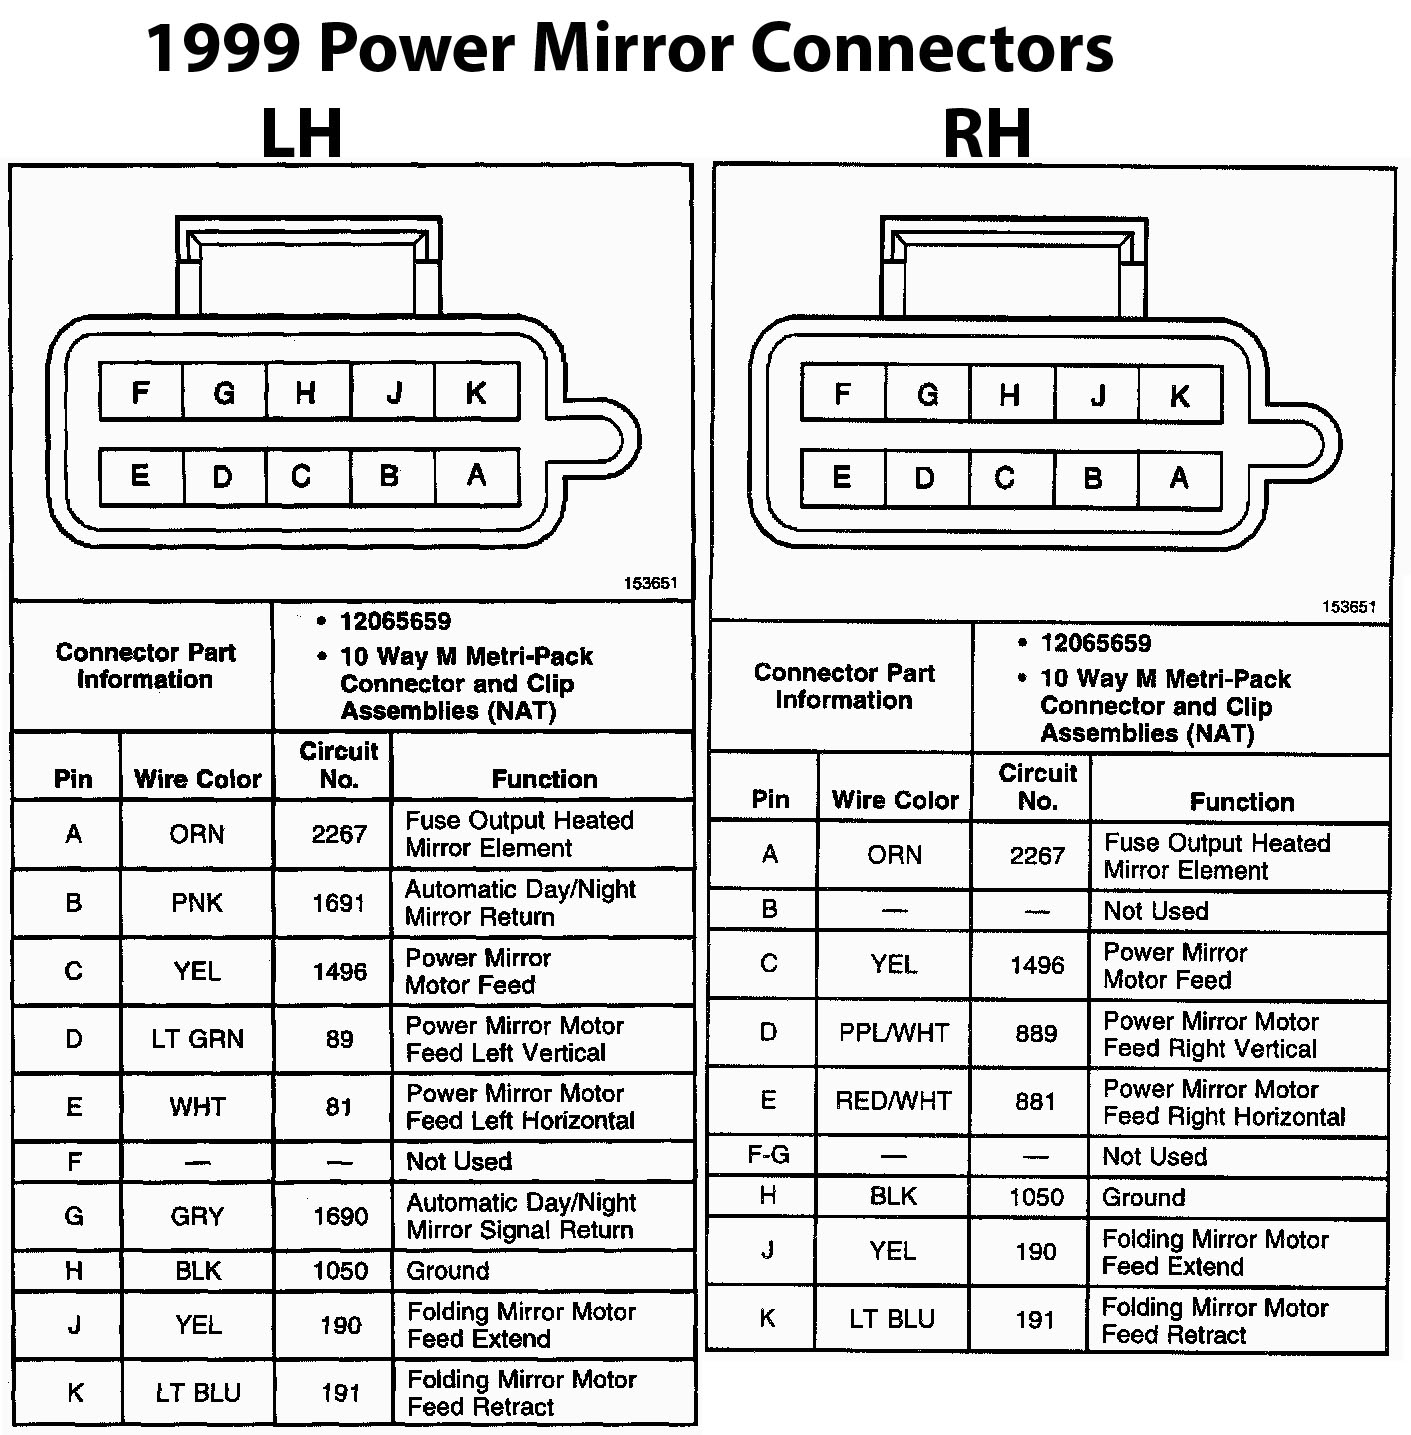 hight resolution of 97 blazer fuse block wiring diagram starting know about wiring fuse box label 97 blazer fuse